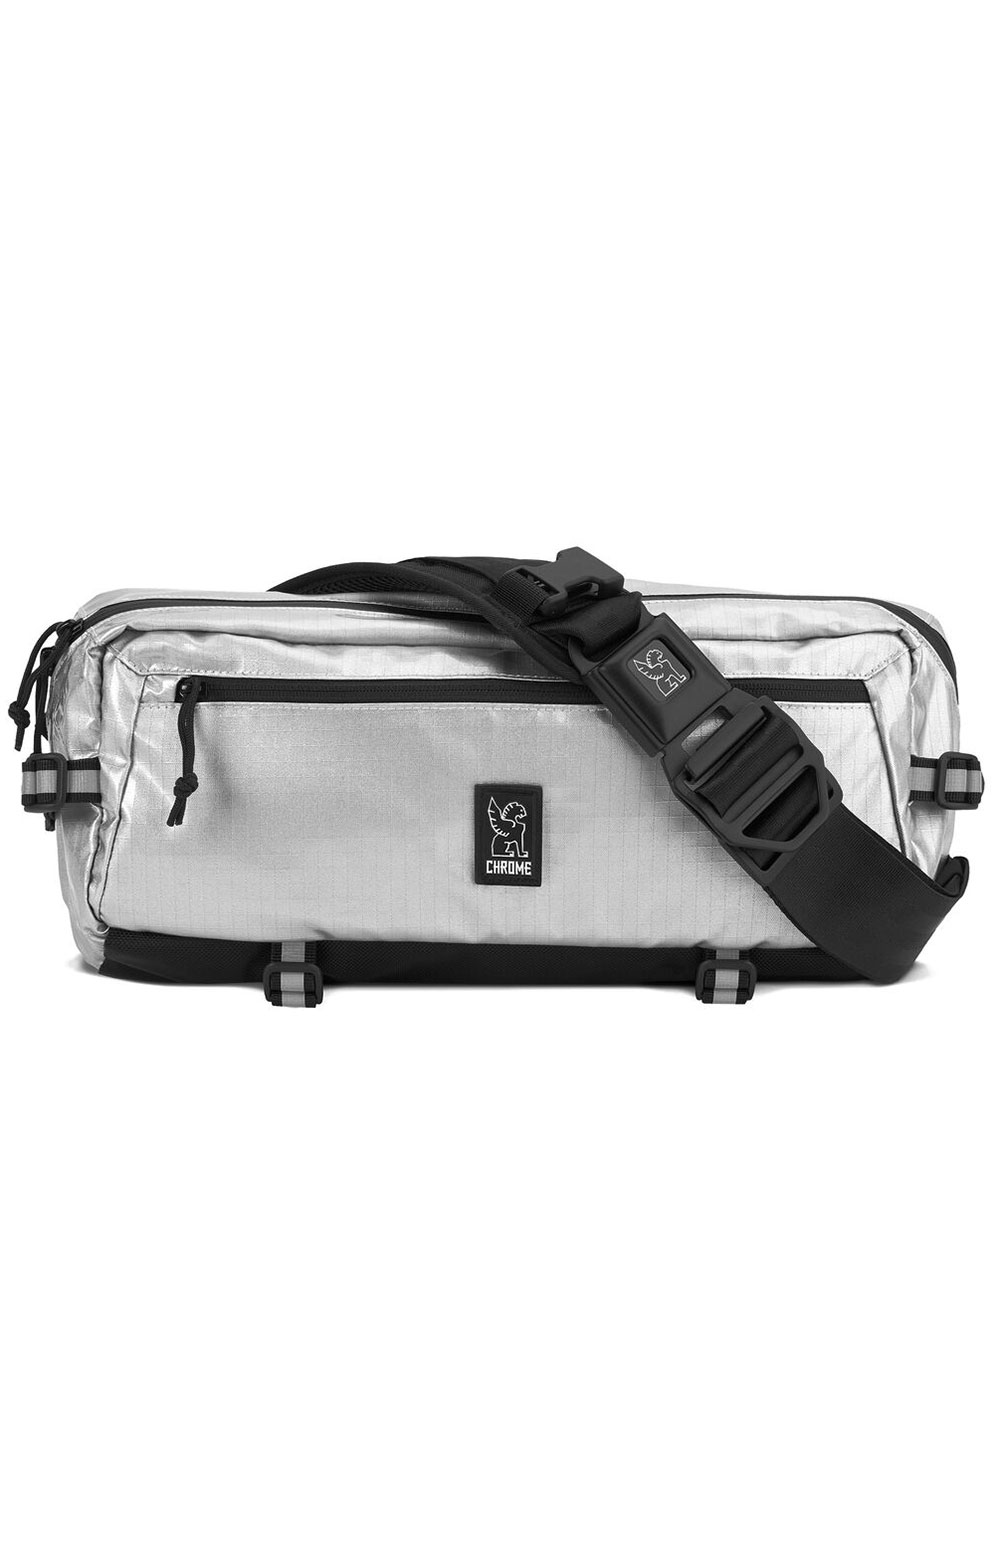 Kadet Nylon Bag - Chrome/Aluminum 2